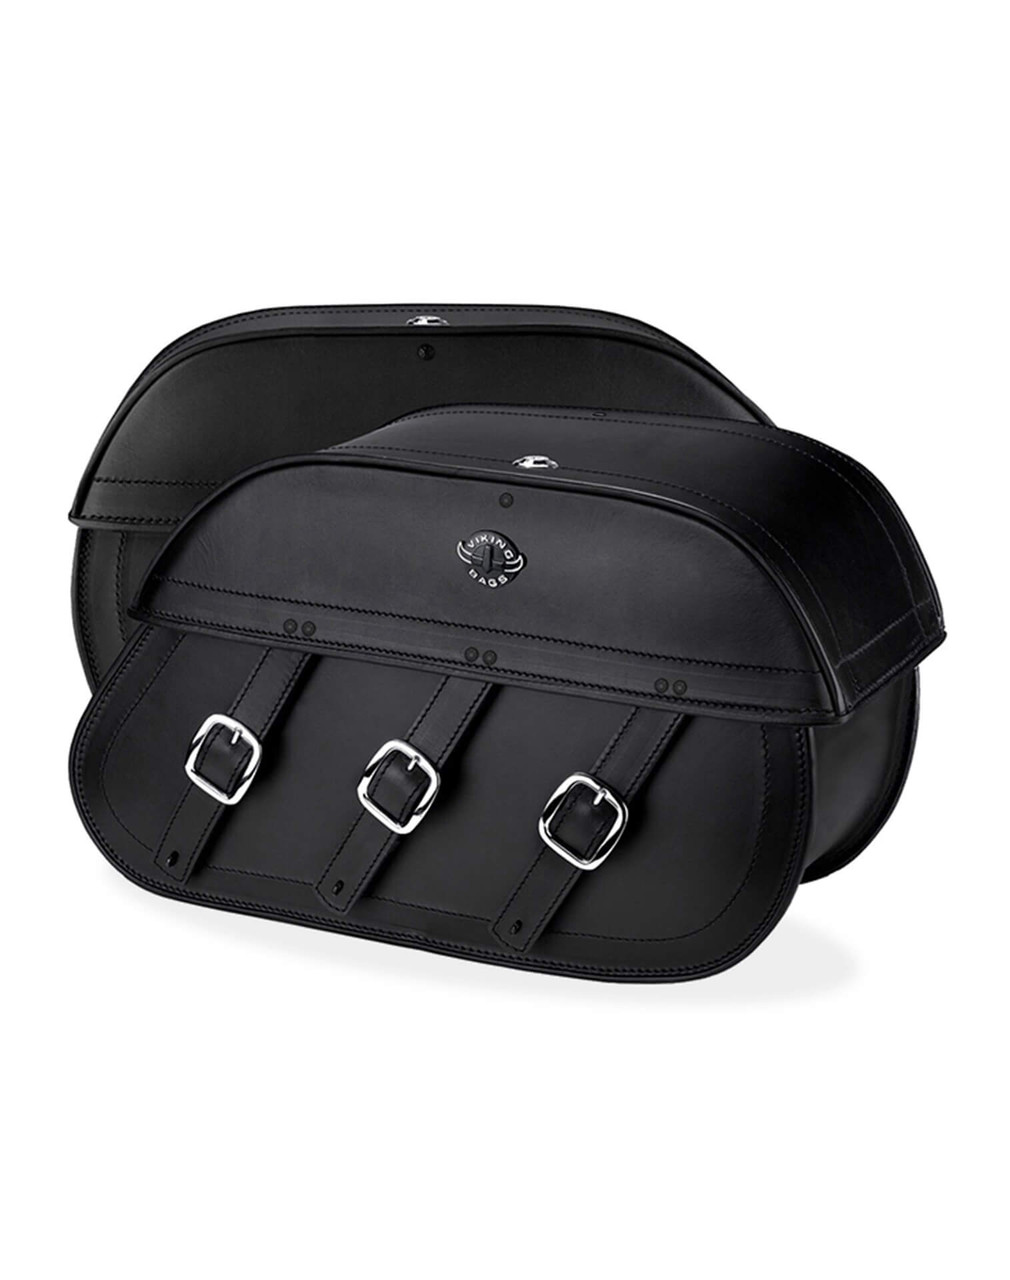 Indian Chief Standard Trianon Motorcycle Saddlebags Both Bags View